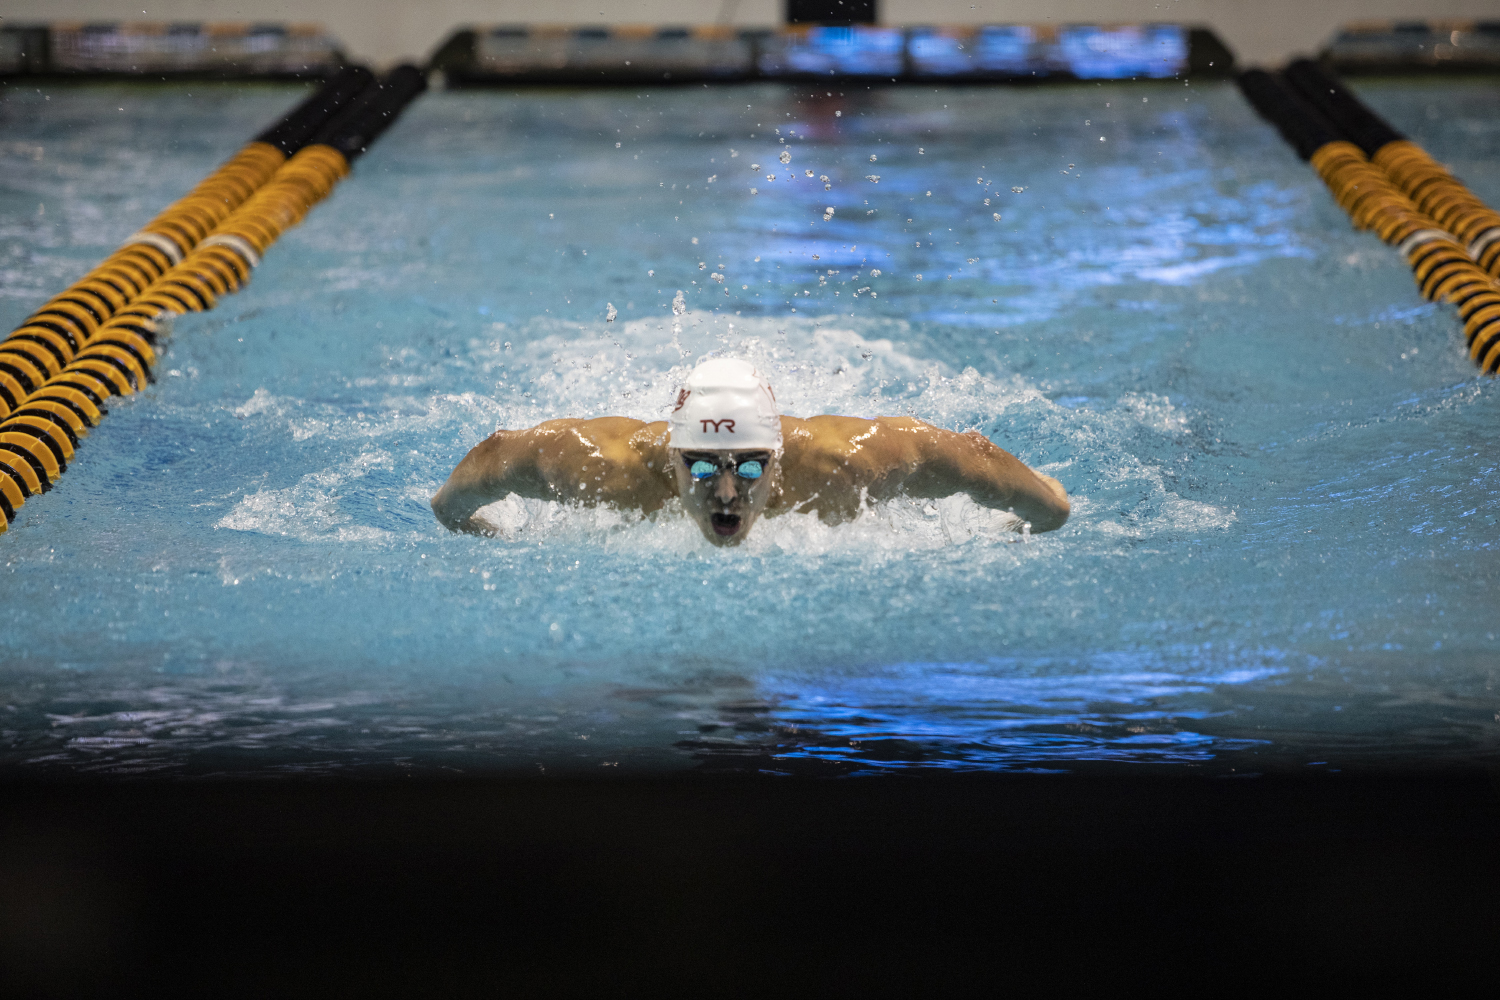 Indiana%27s+Van+Mathias+competes+in+the+200+meter+breaststroke+during+finals+of+the+Big+10+Swimming+Championships+on+Saturday%2C+March+2%2C+2019.+